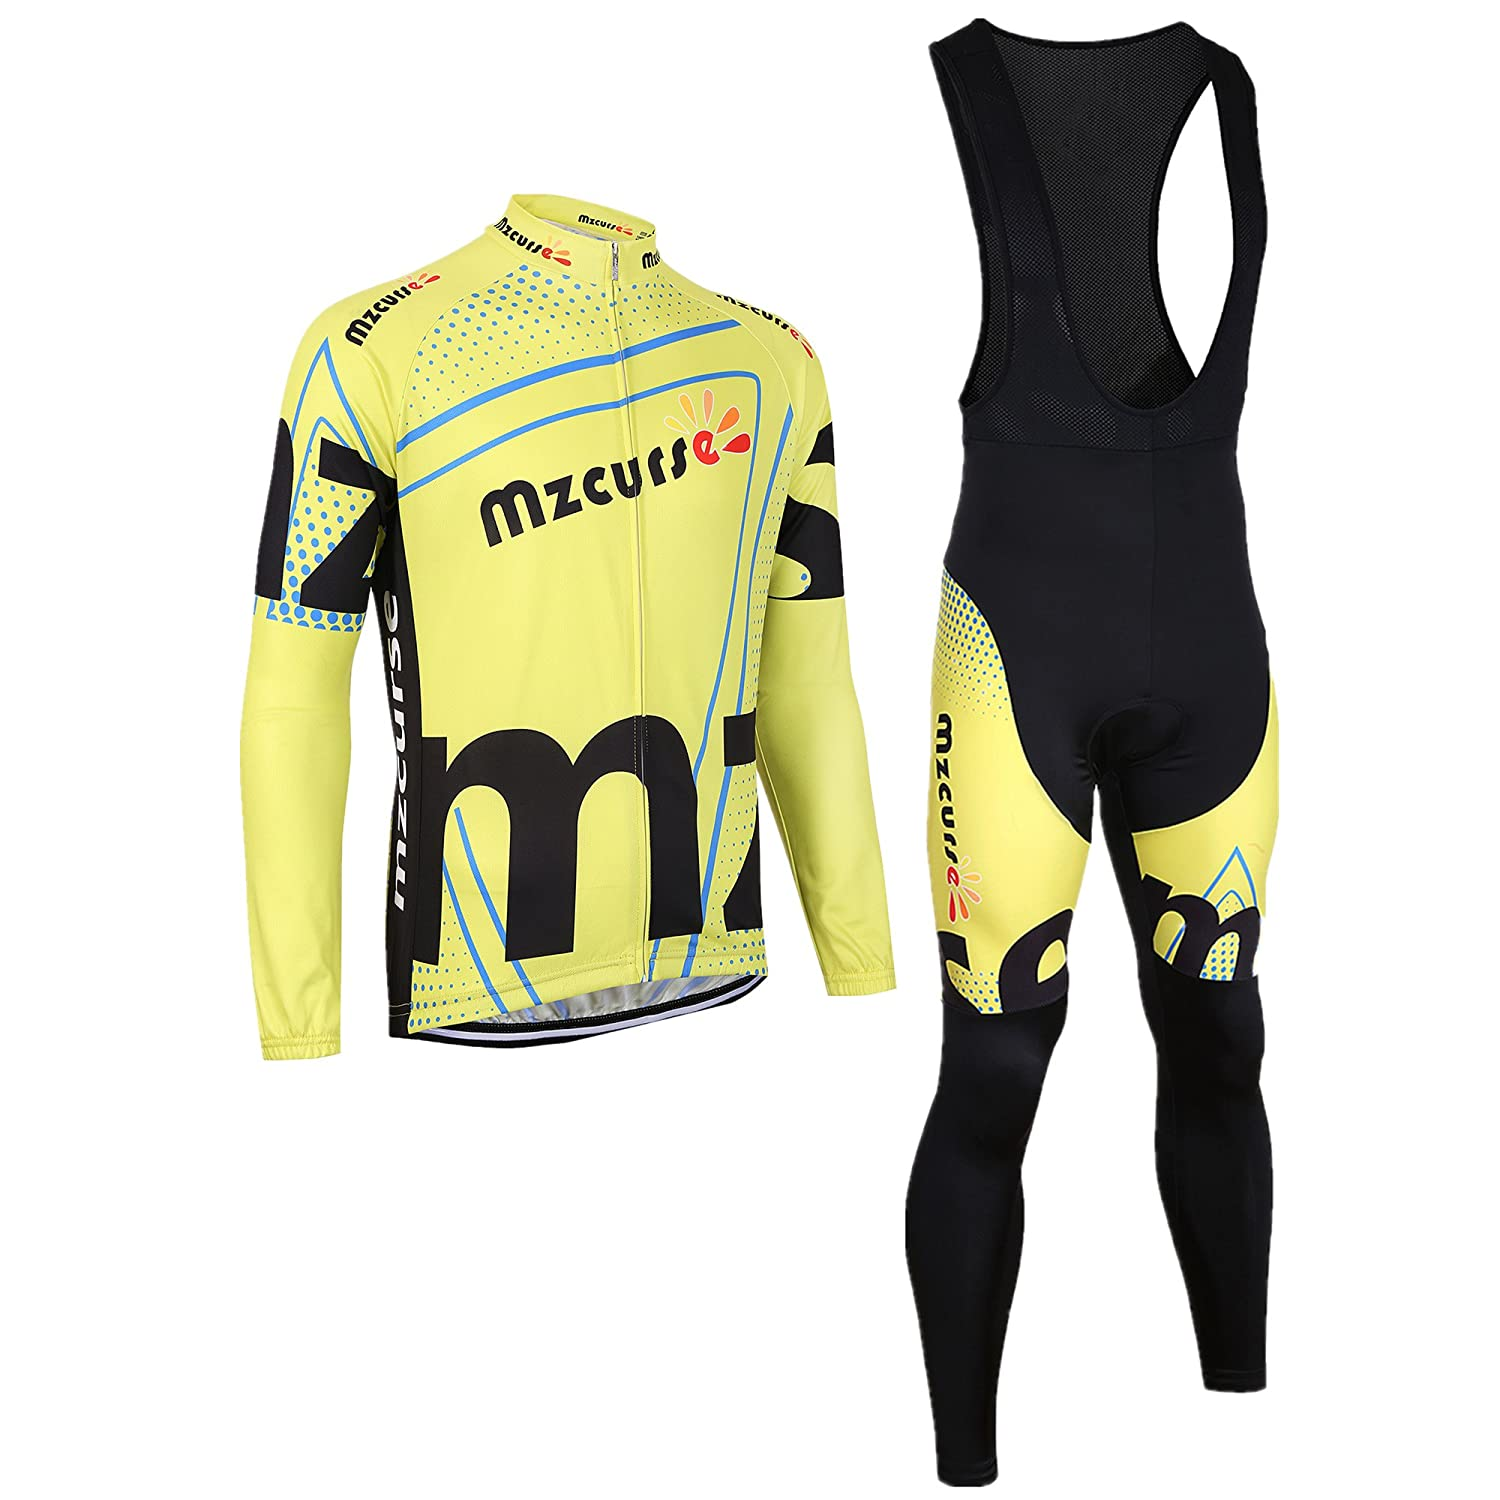 Yellow Large,please check the size chart mzcurse Women's Cycling Long Sleeve Jersey Jacket Braces Tights Bib Pants Kit Set